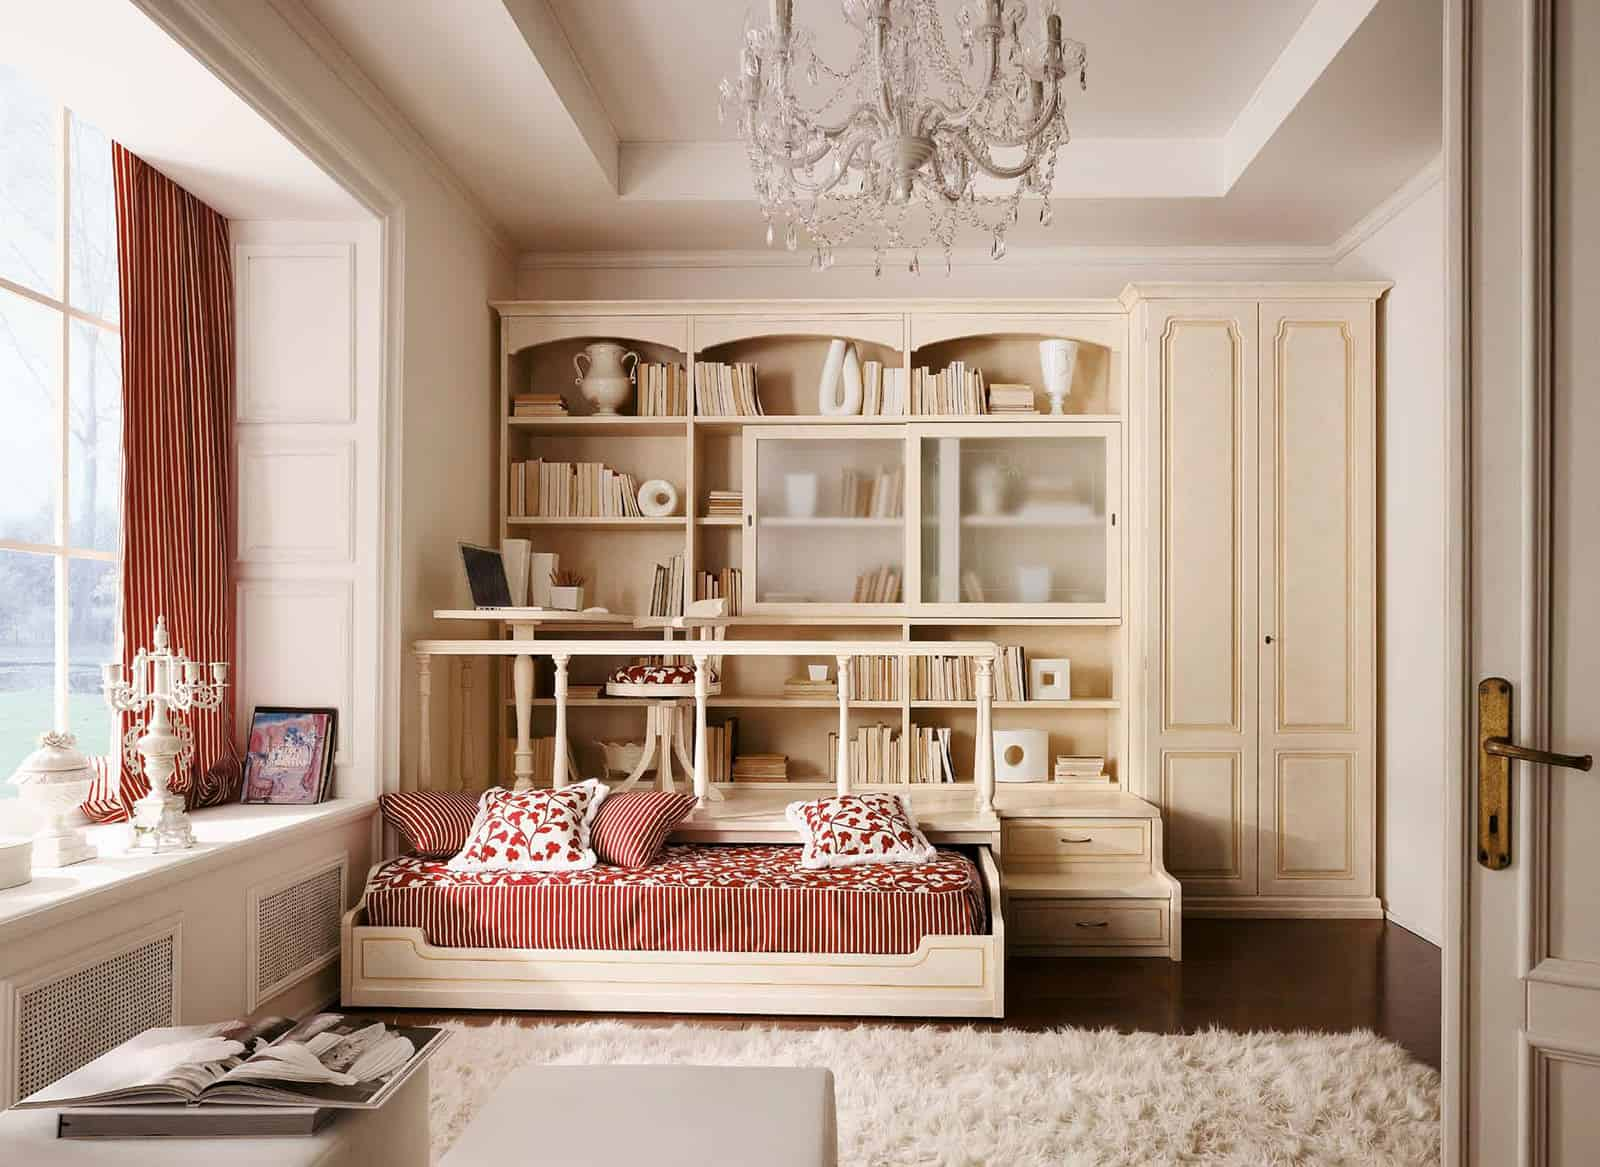 Kids Room Ideas French Country Decor Provence Decor Kids Room Decor